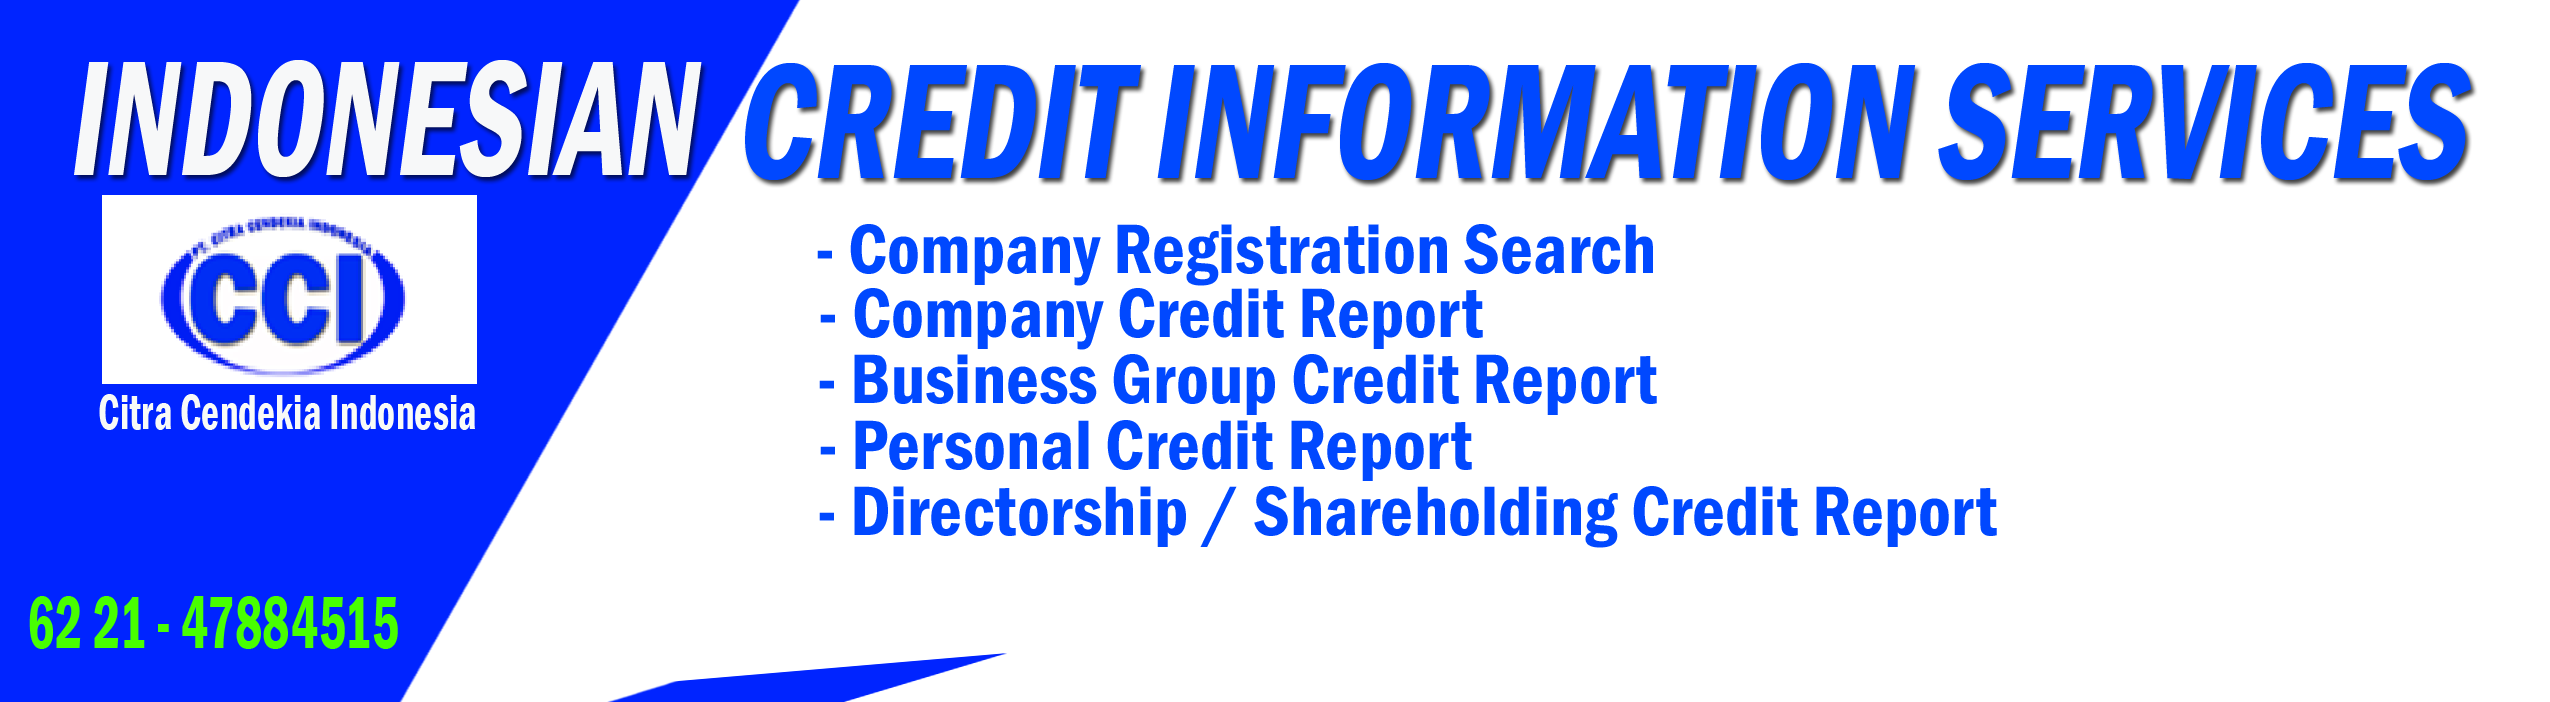 Indonesia Credit Information Services